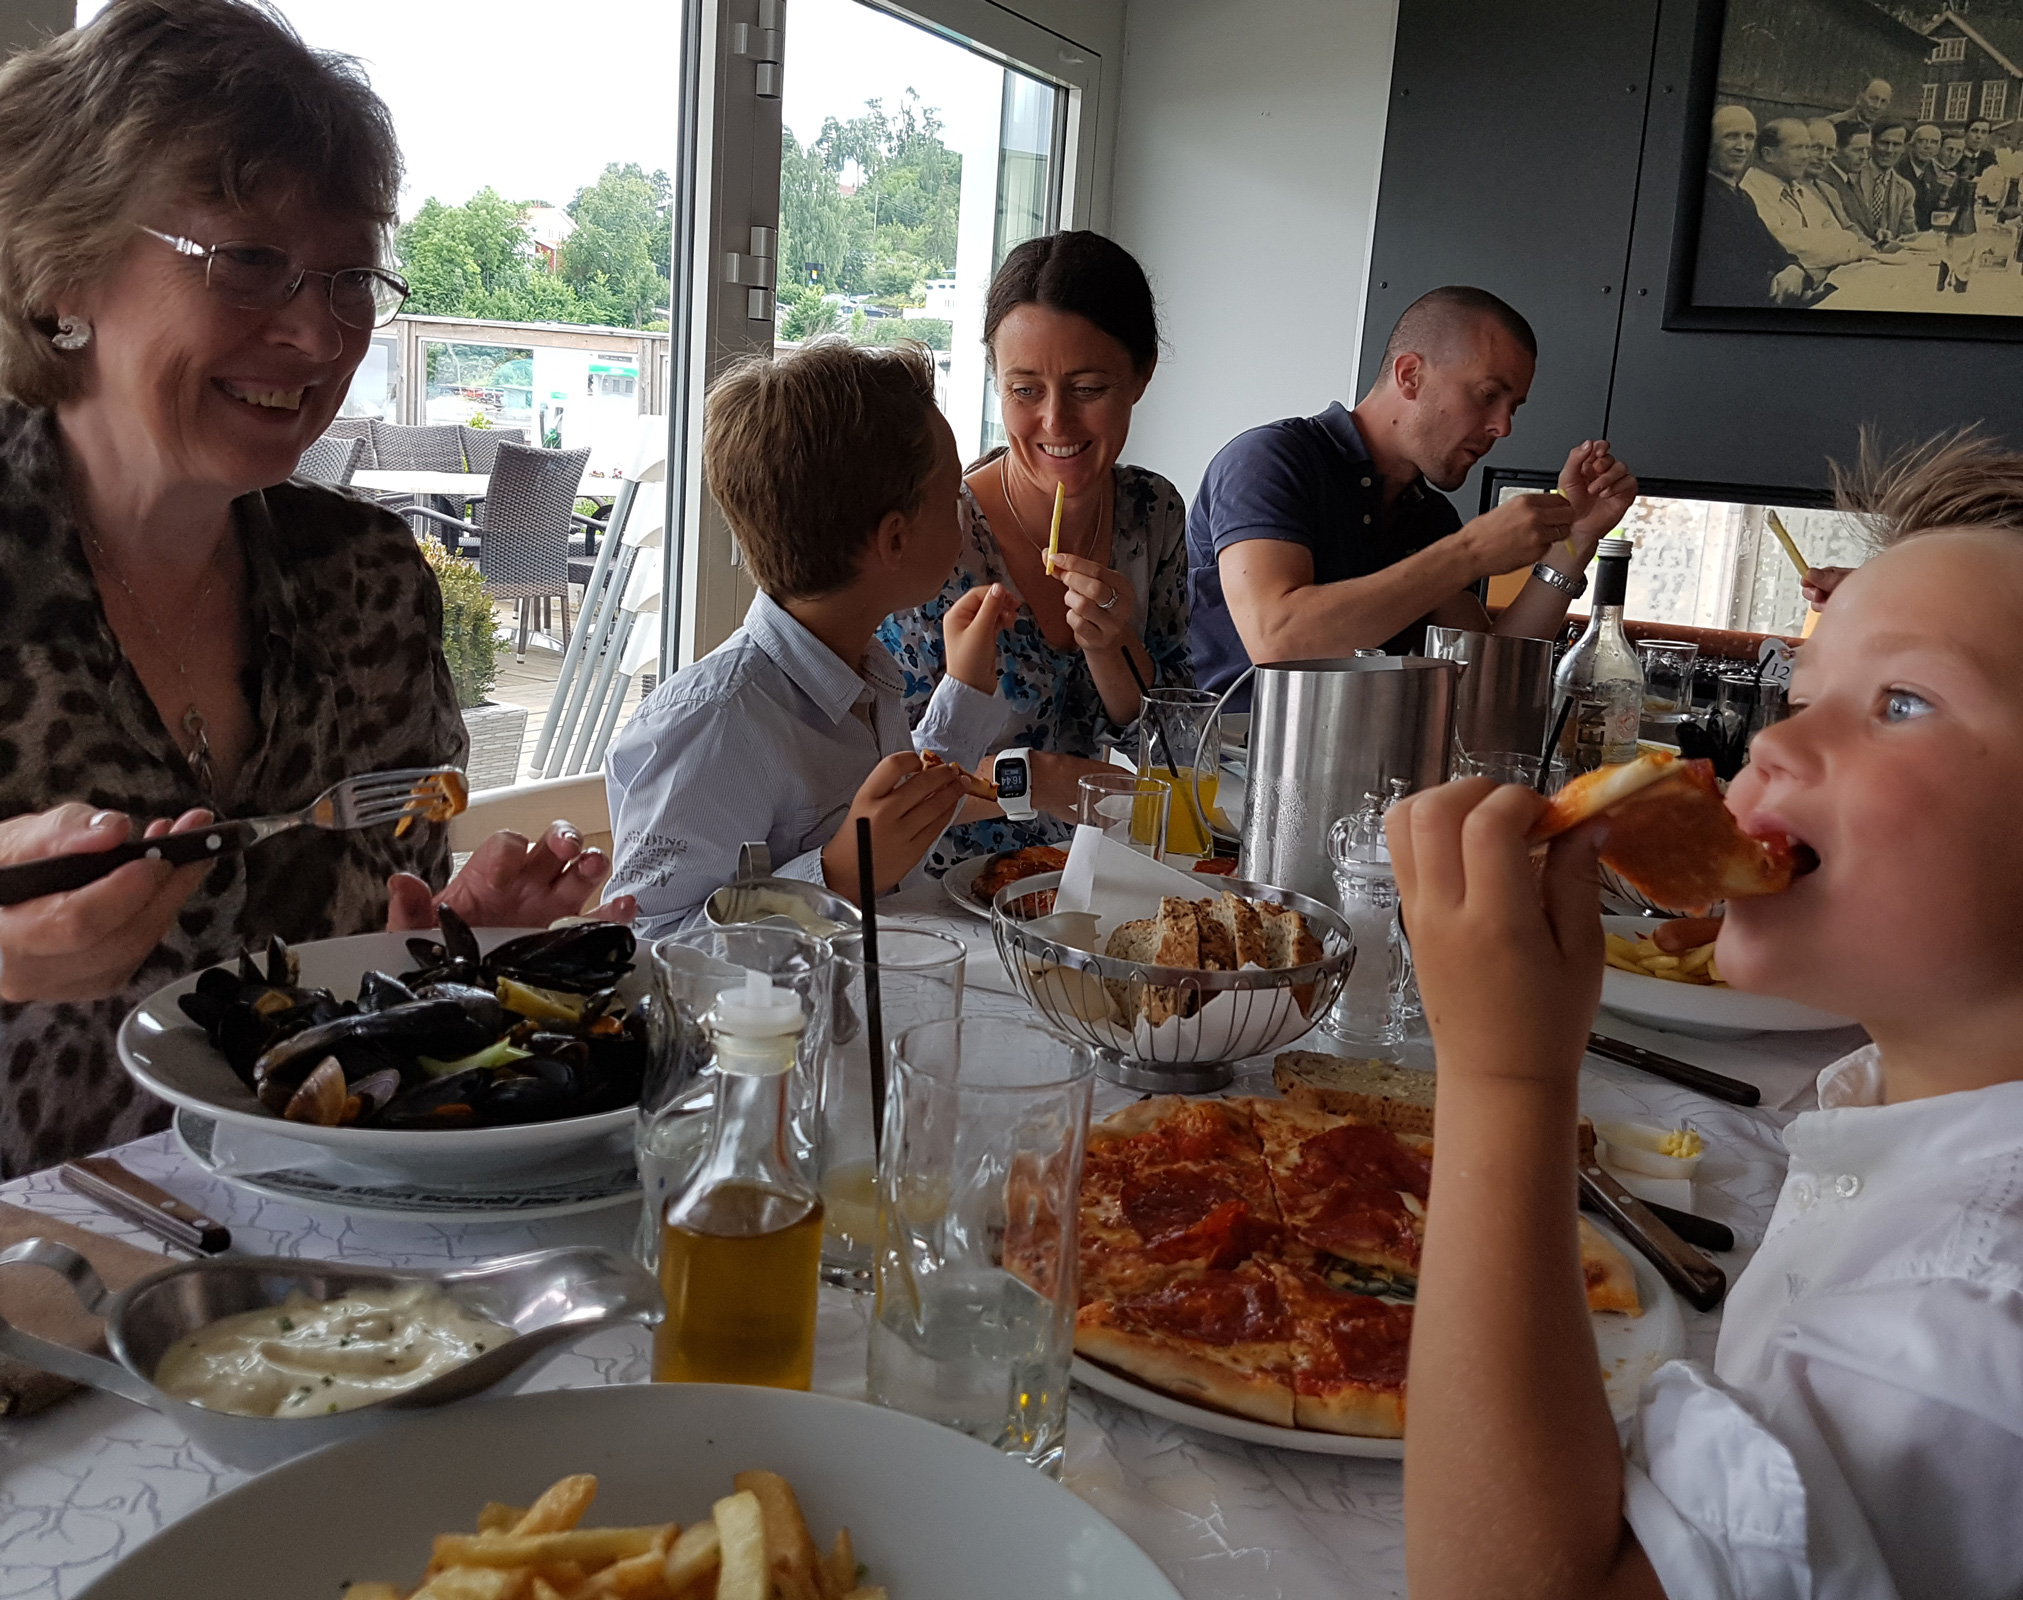 At Vito's restaurant beside the harbour in Vollen